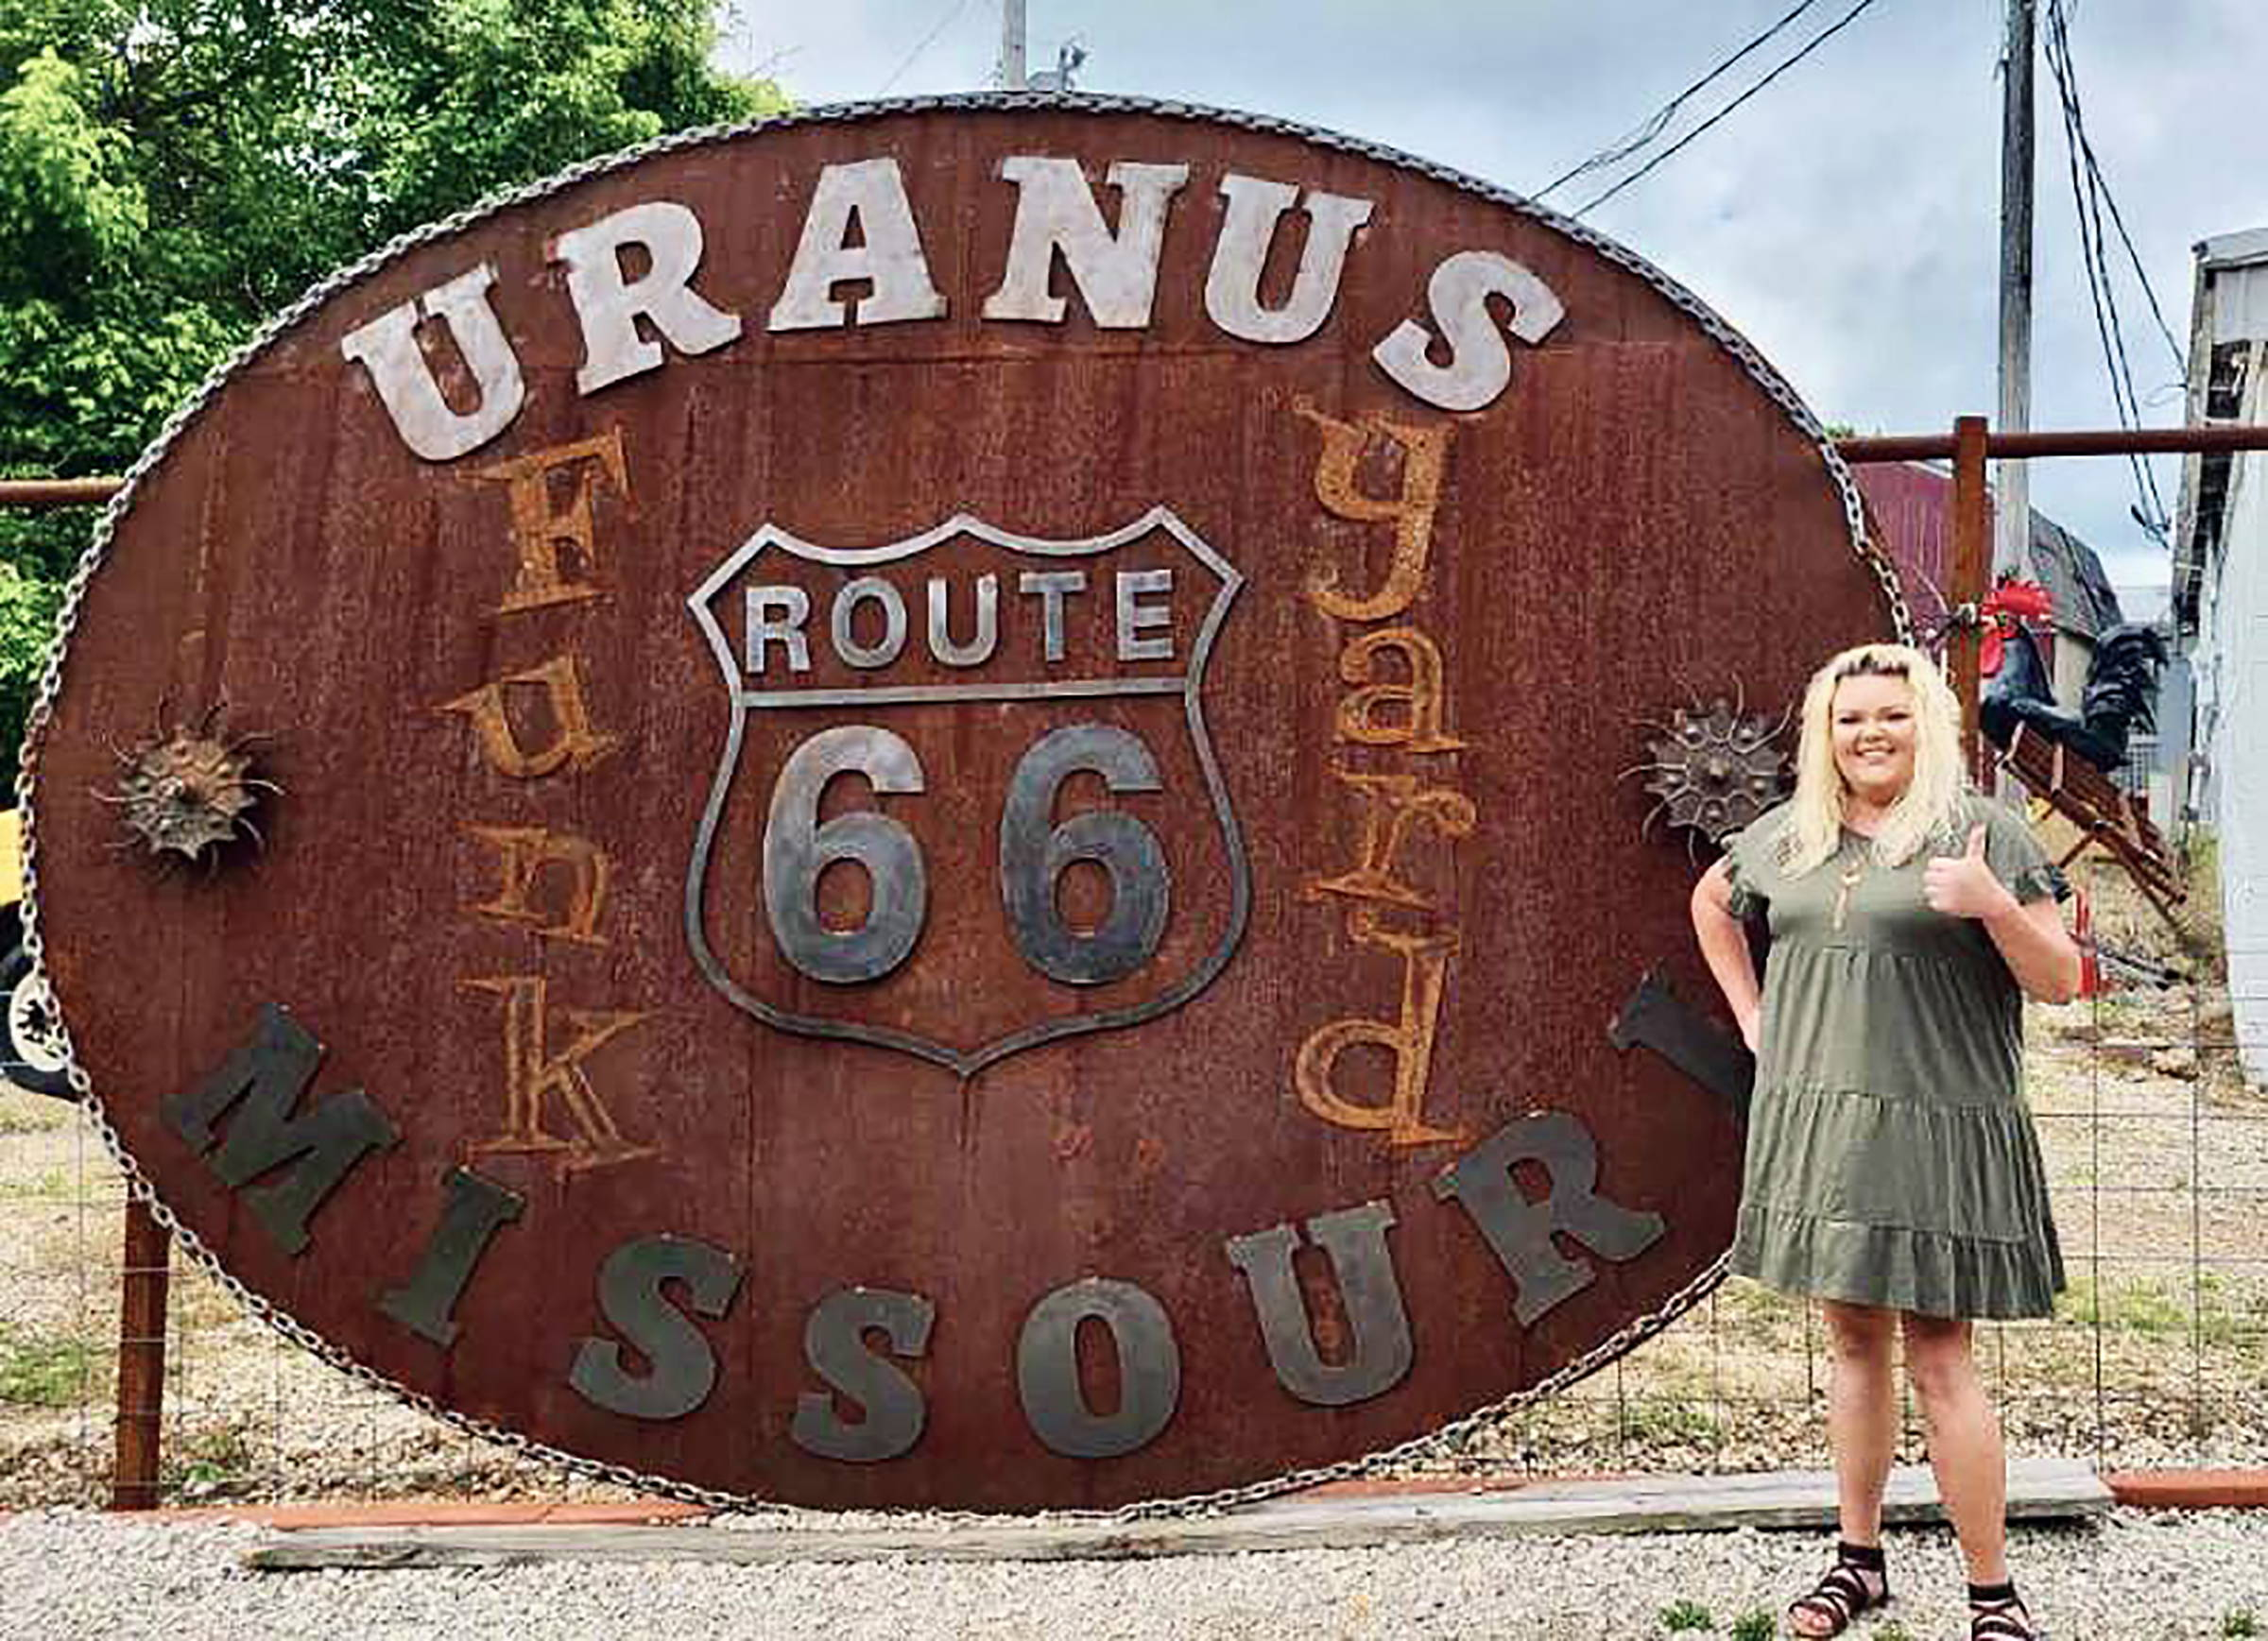 Miss Tiffany next to the World's Largest Belt Buckle in Uranus.